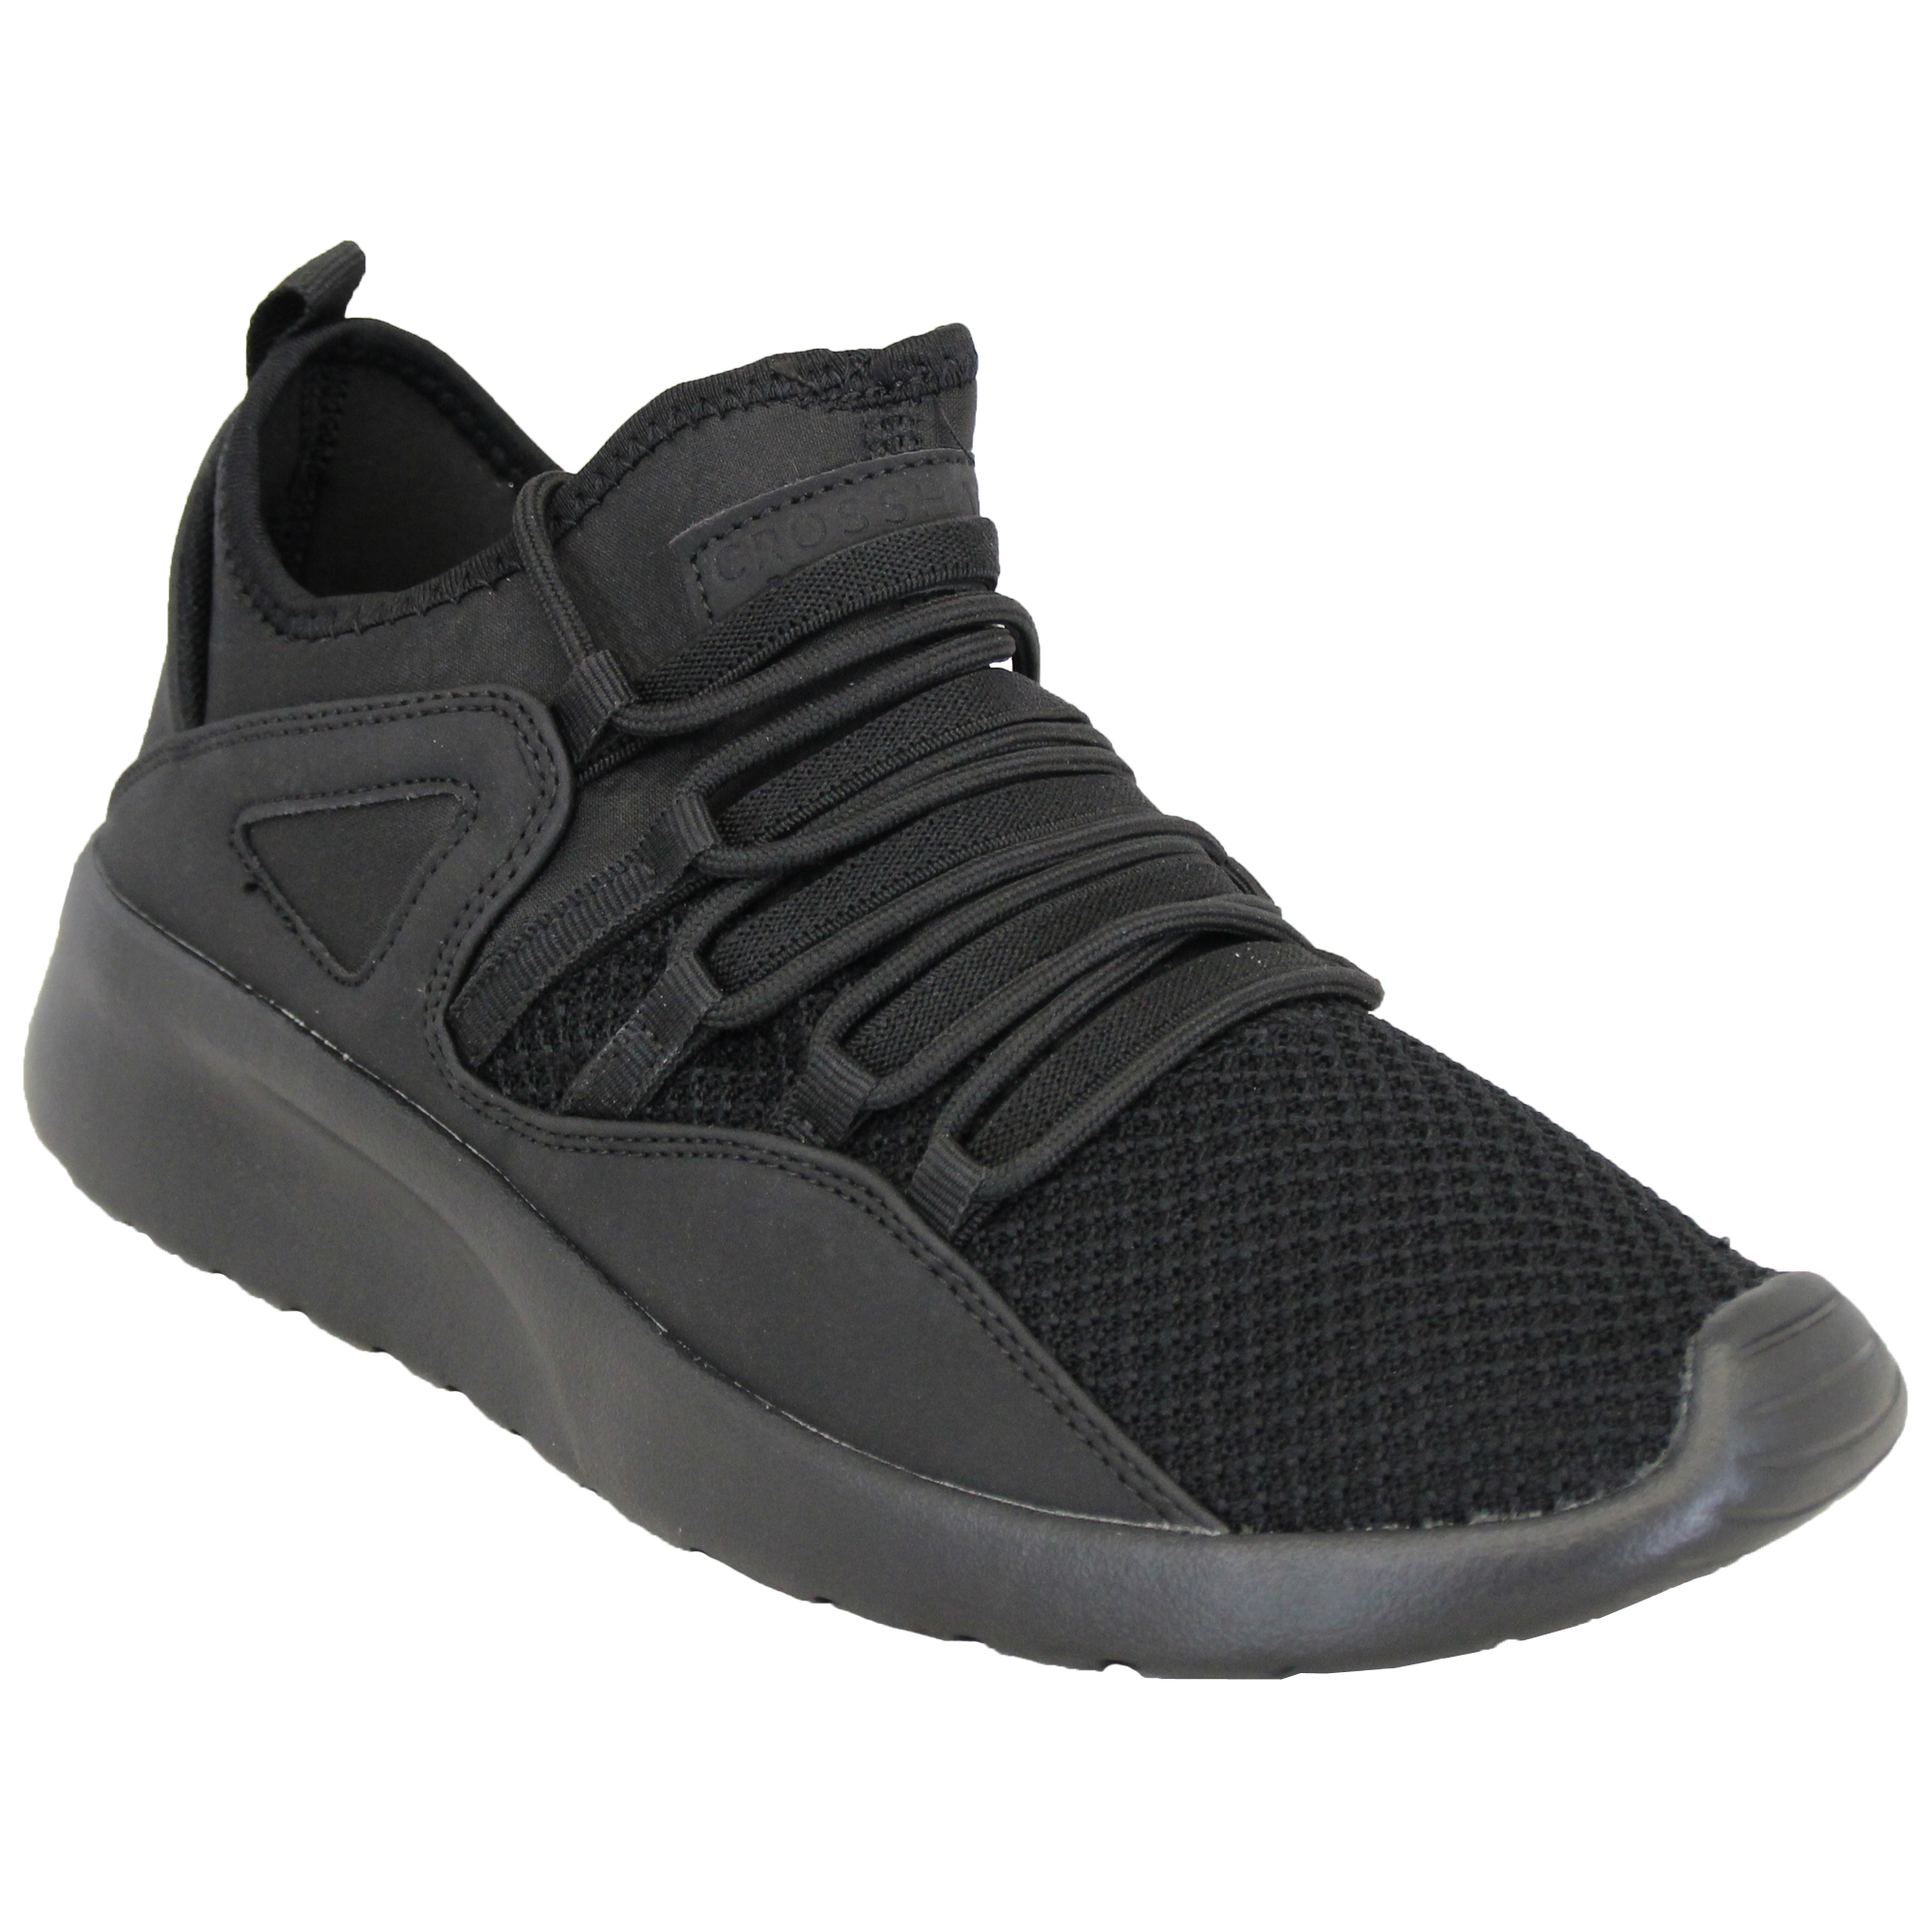 Mens-Trainers-Crosshatch-Running-Speed-Lace-Up-Sneakers-Sports-Gym-Casual-Shoes thumbnail 2